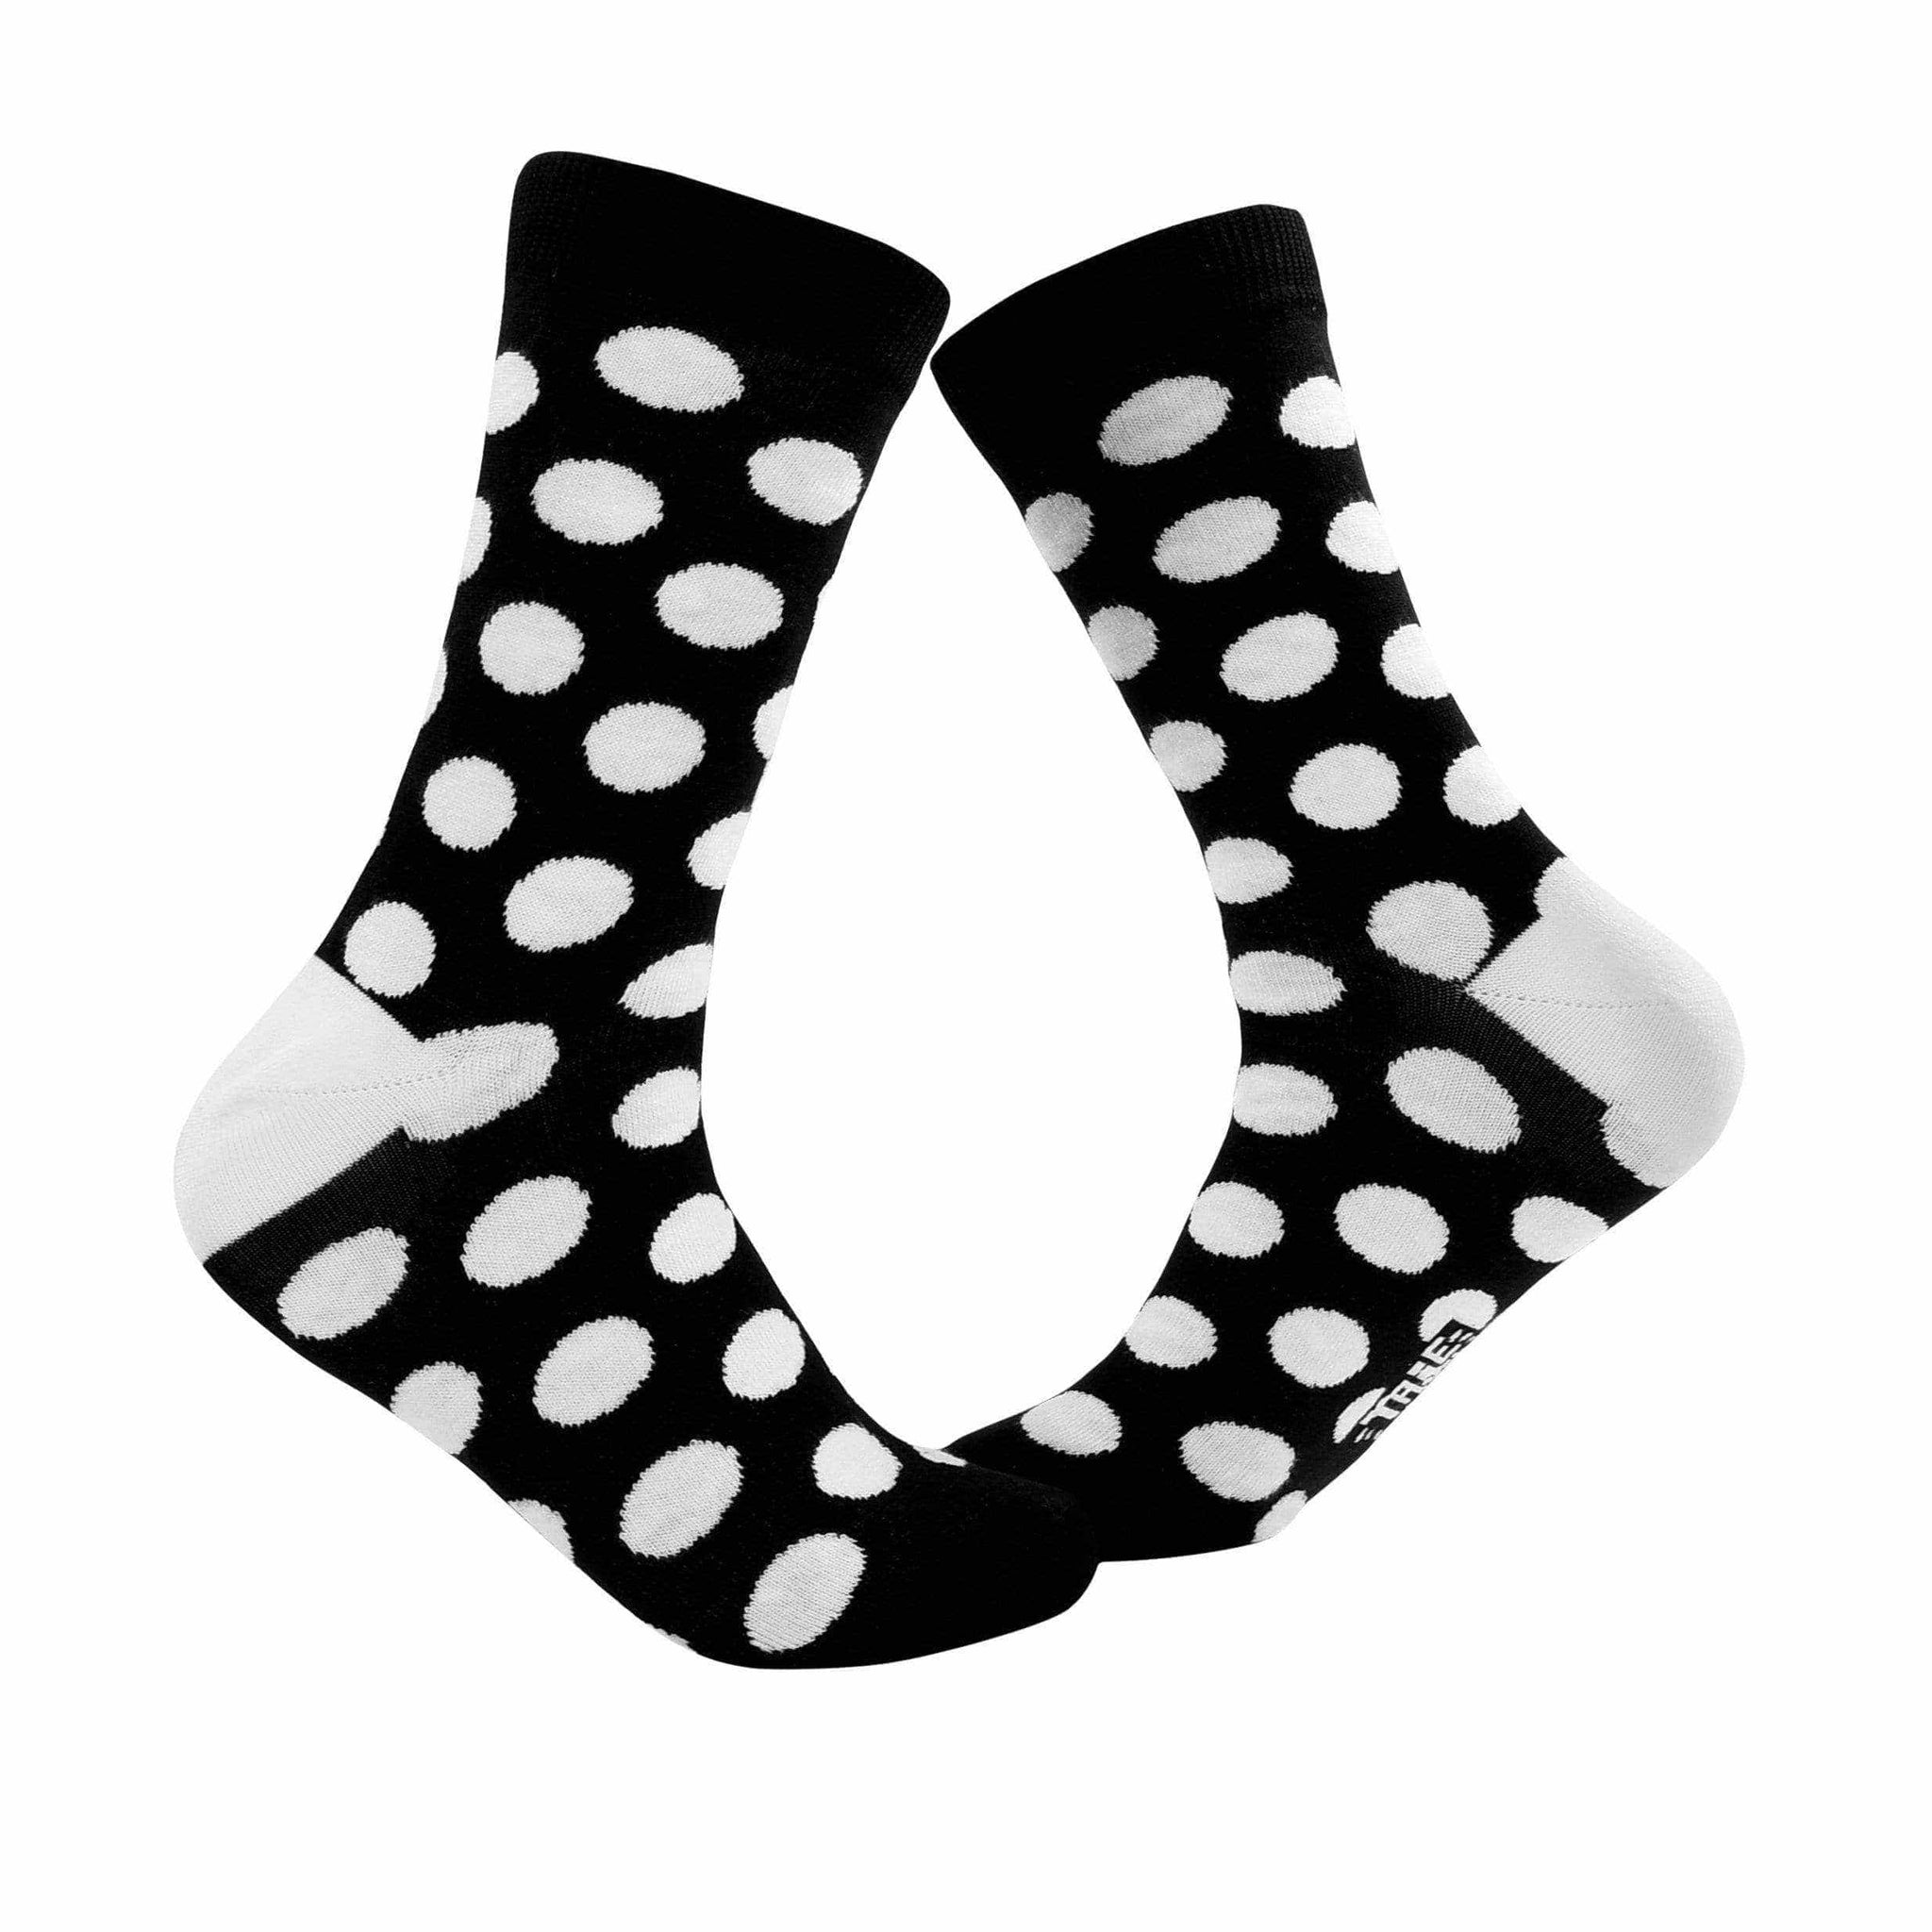 Big Polka Dots Crew Socks - Black and White - Tale Of Socks